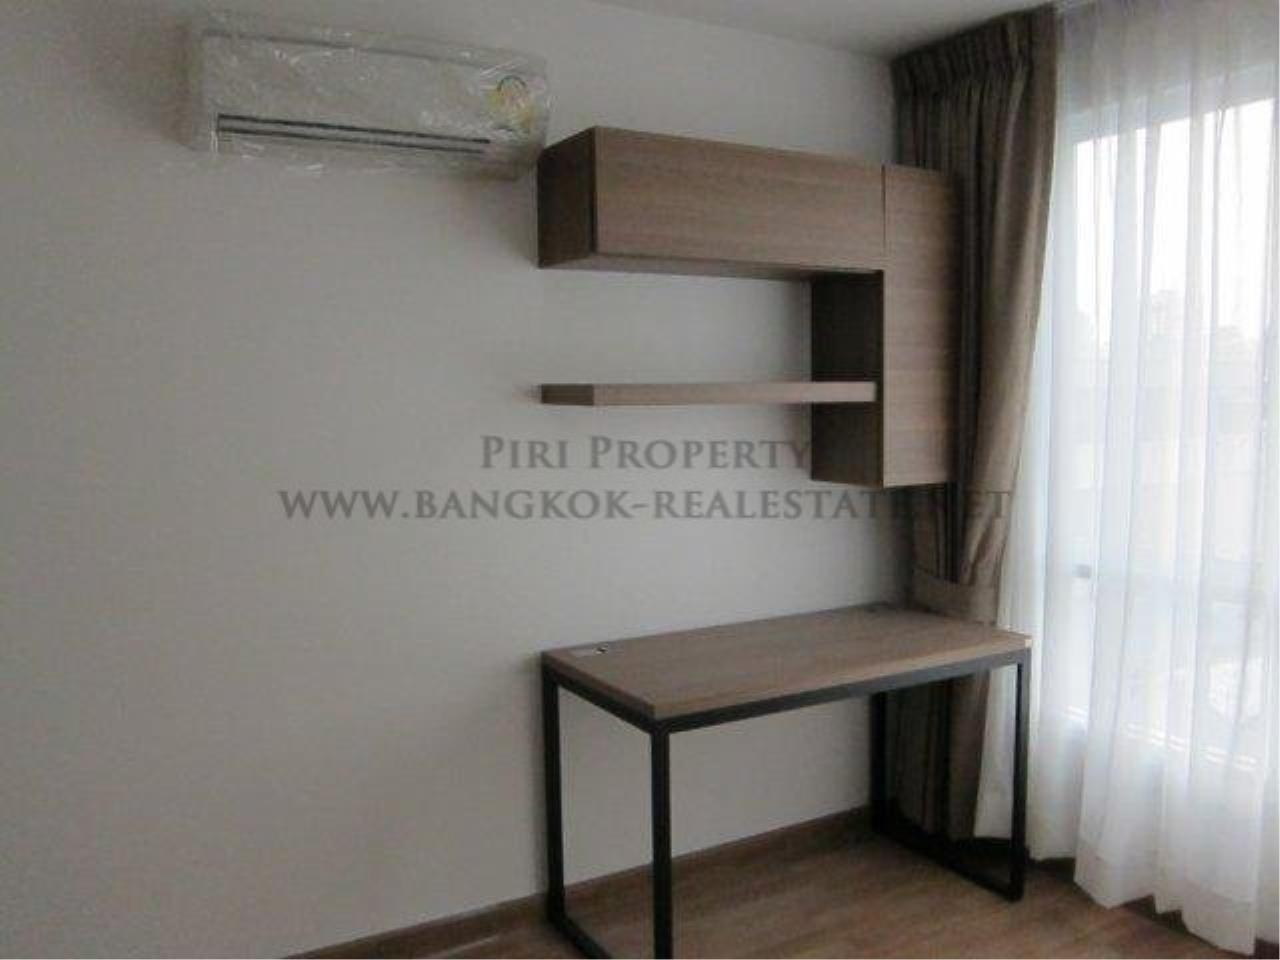 Piri Property Agency's 2 Bedroom Condo in Asoke - Voque 16 for Rent - Free Shuttle to BTS 8